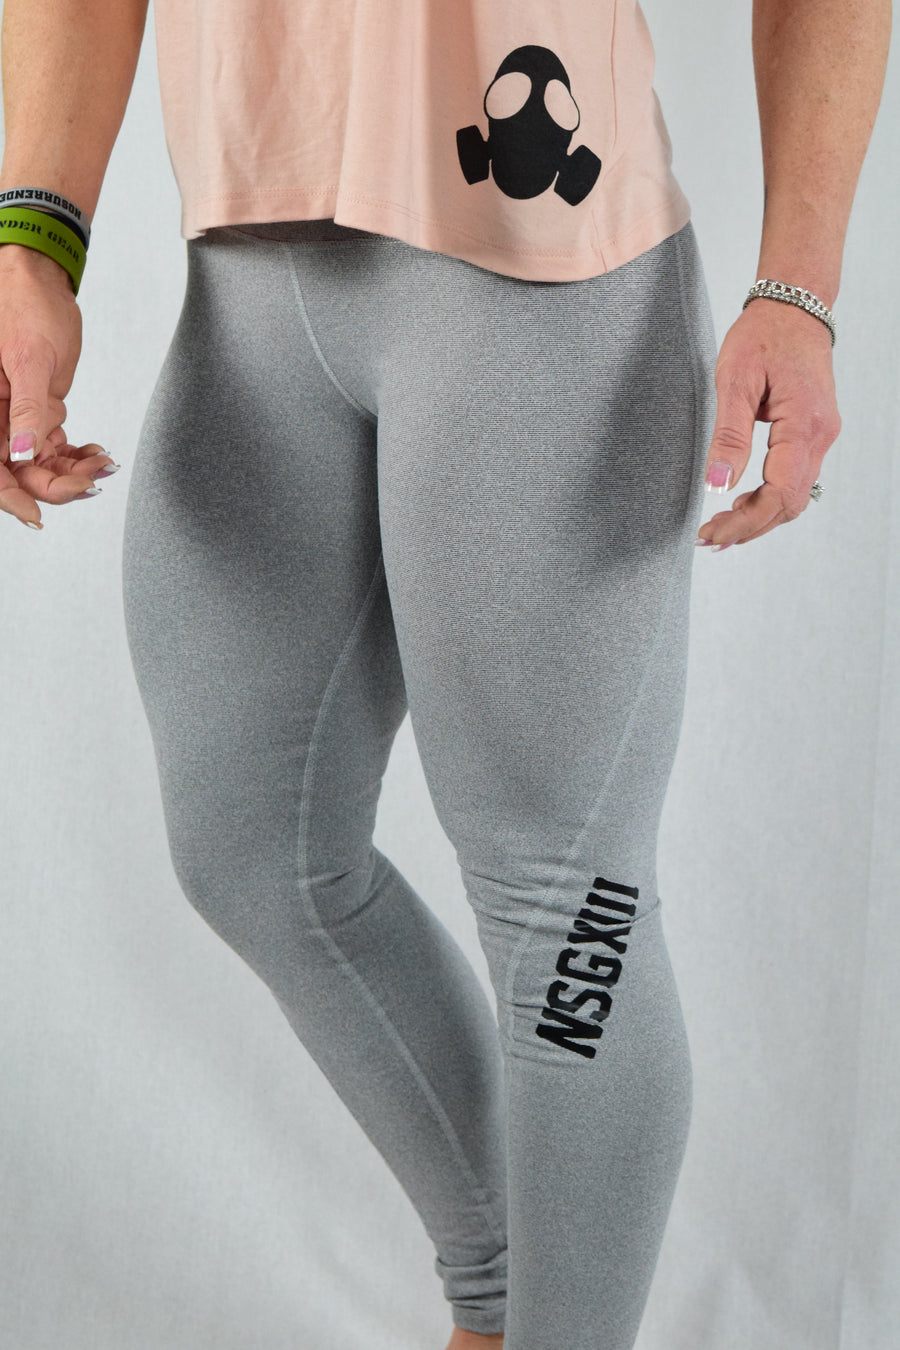 NSG Performance Tights | Gray